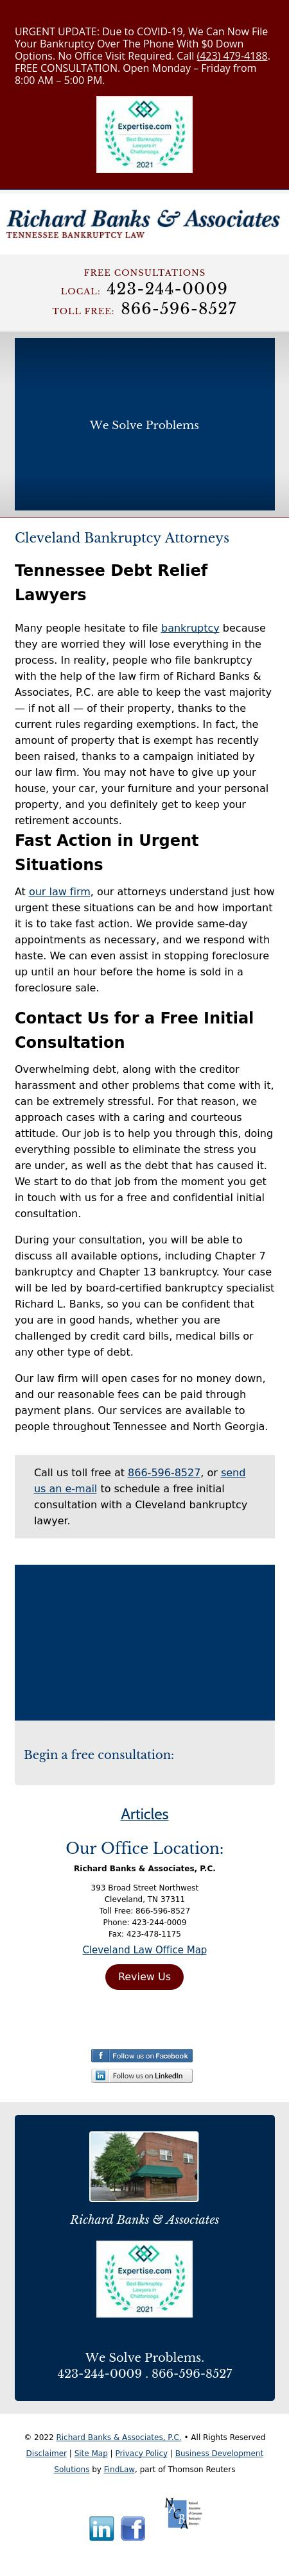 Richard Banks & Associates - Cleveland TN Lawyers